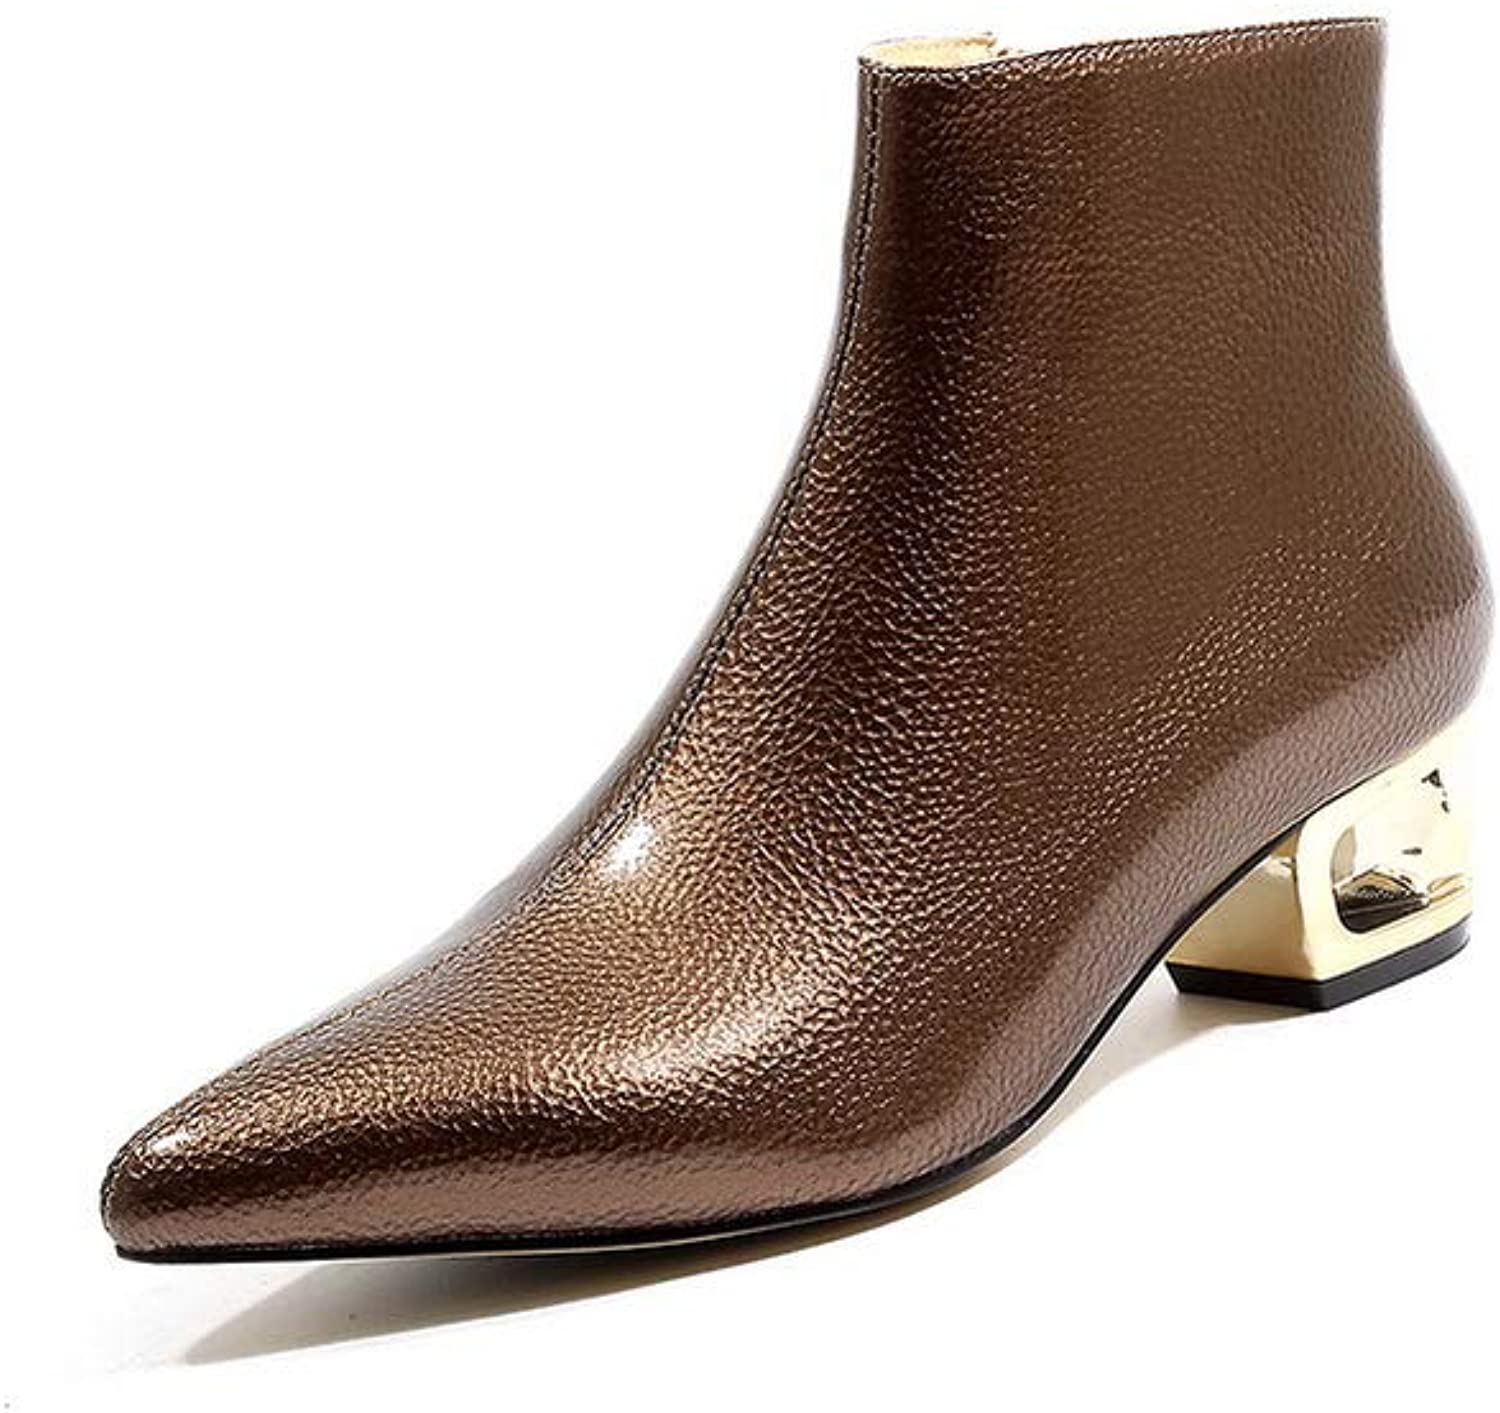 AdeeSu Womens Bucket-Style Fabric Leather Leather Boots SXE05211